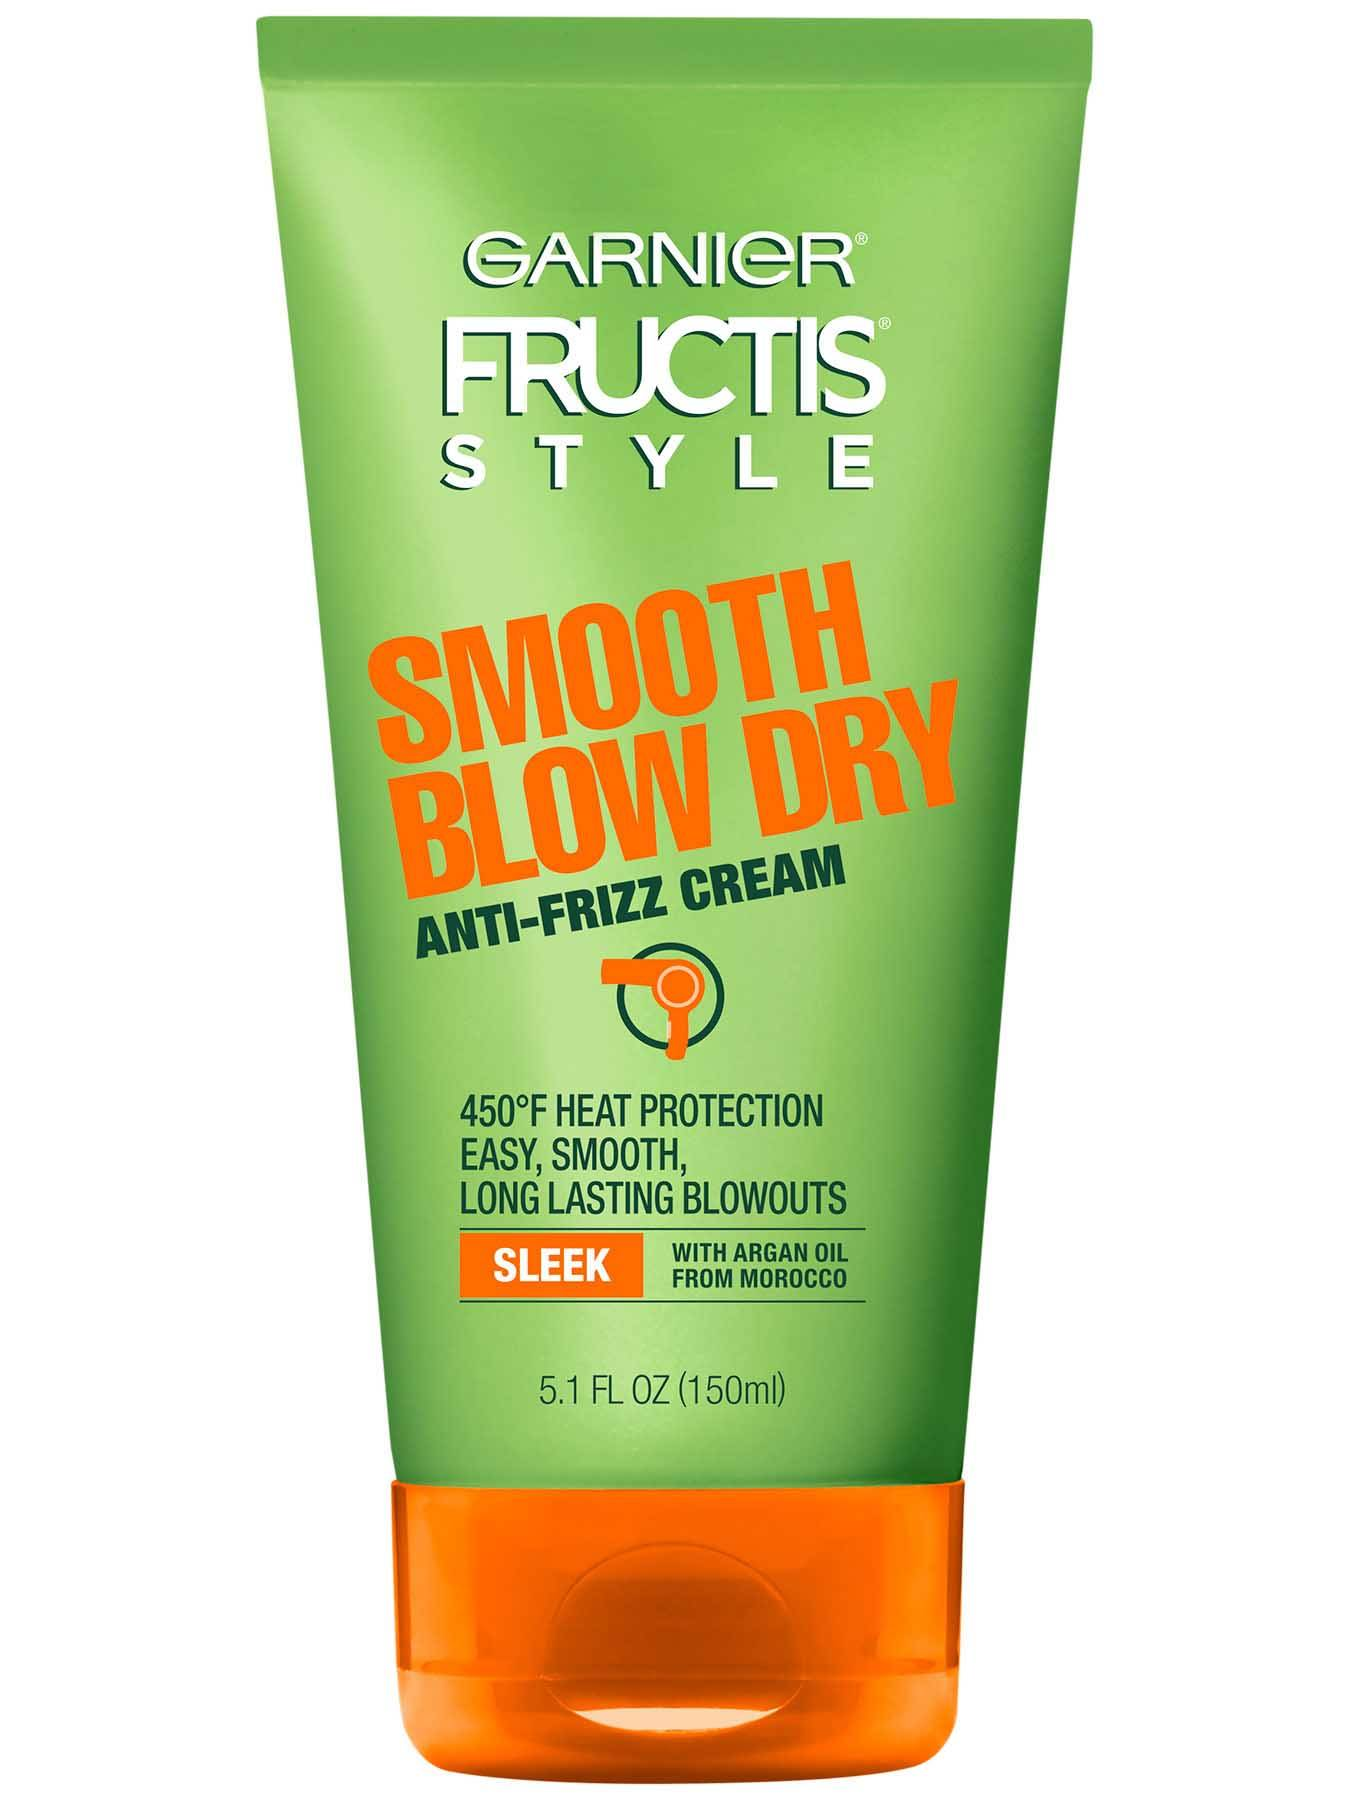 Front view of Smooth Blow Dry Anti-Frizz Cream.